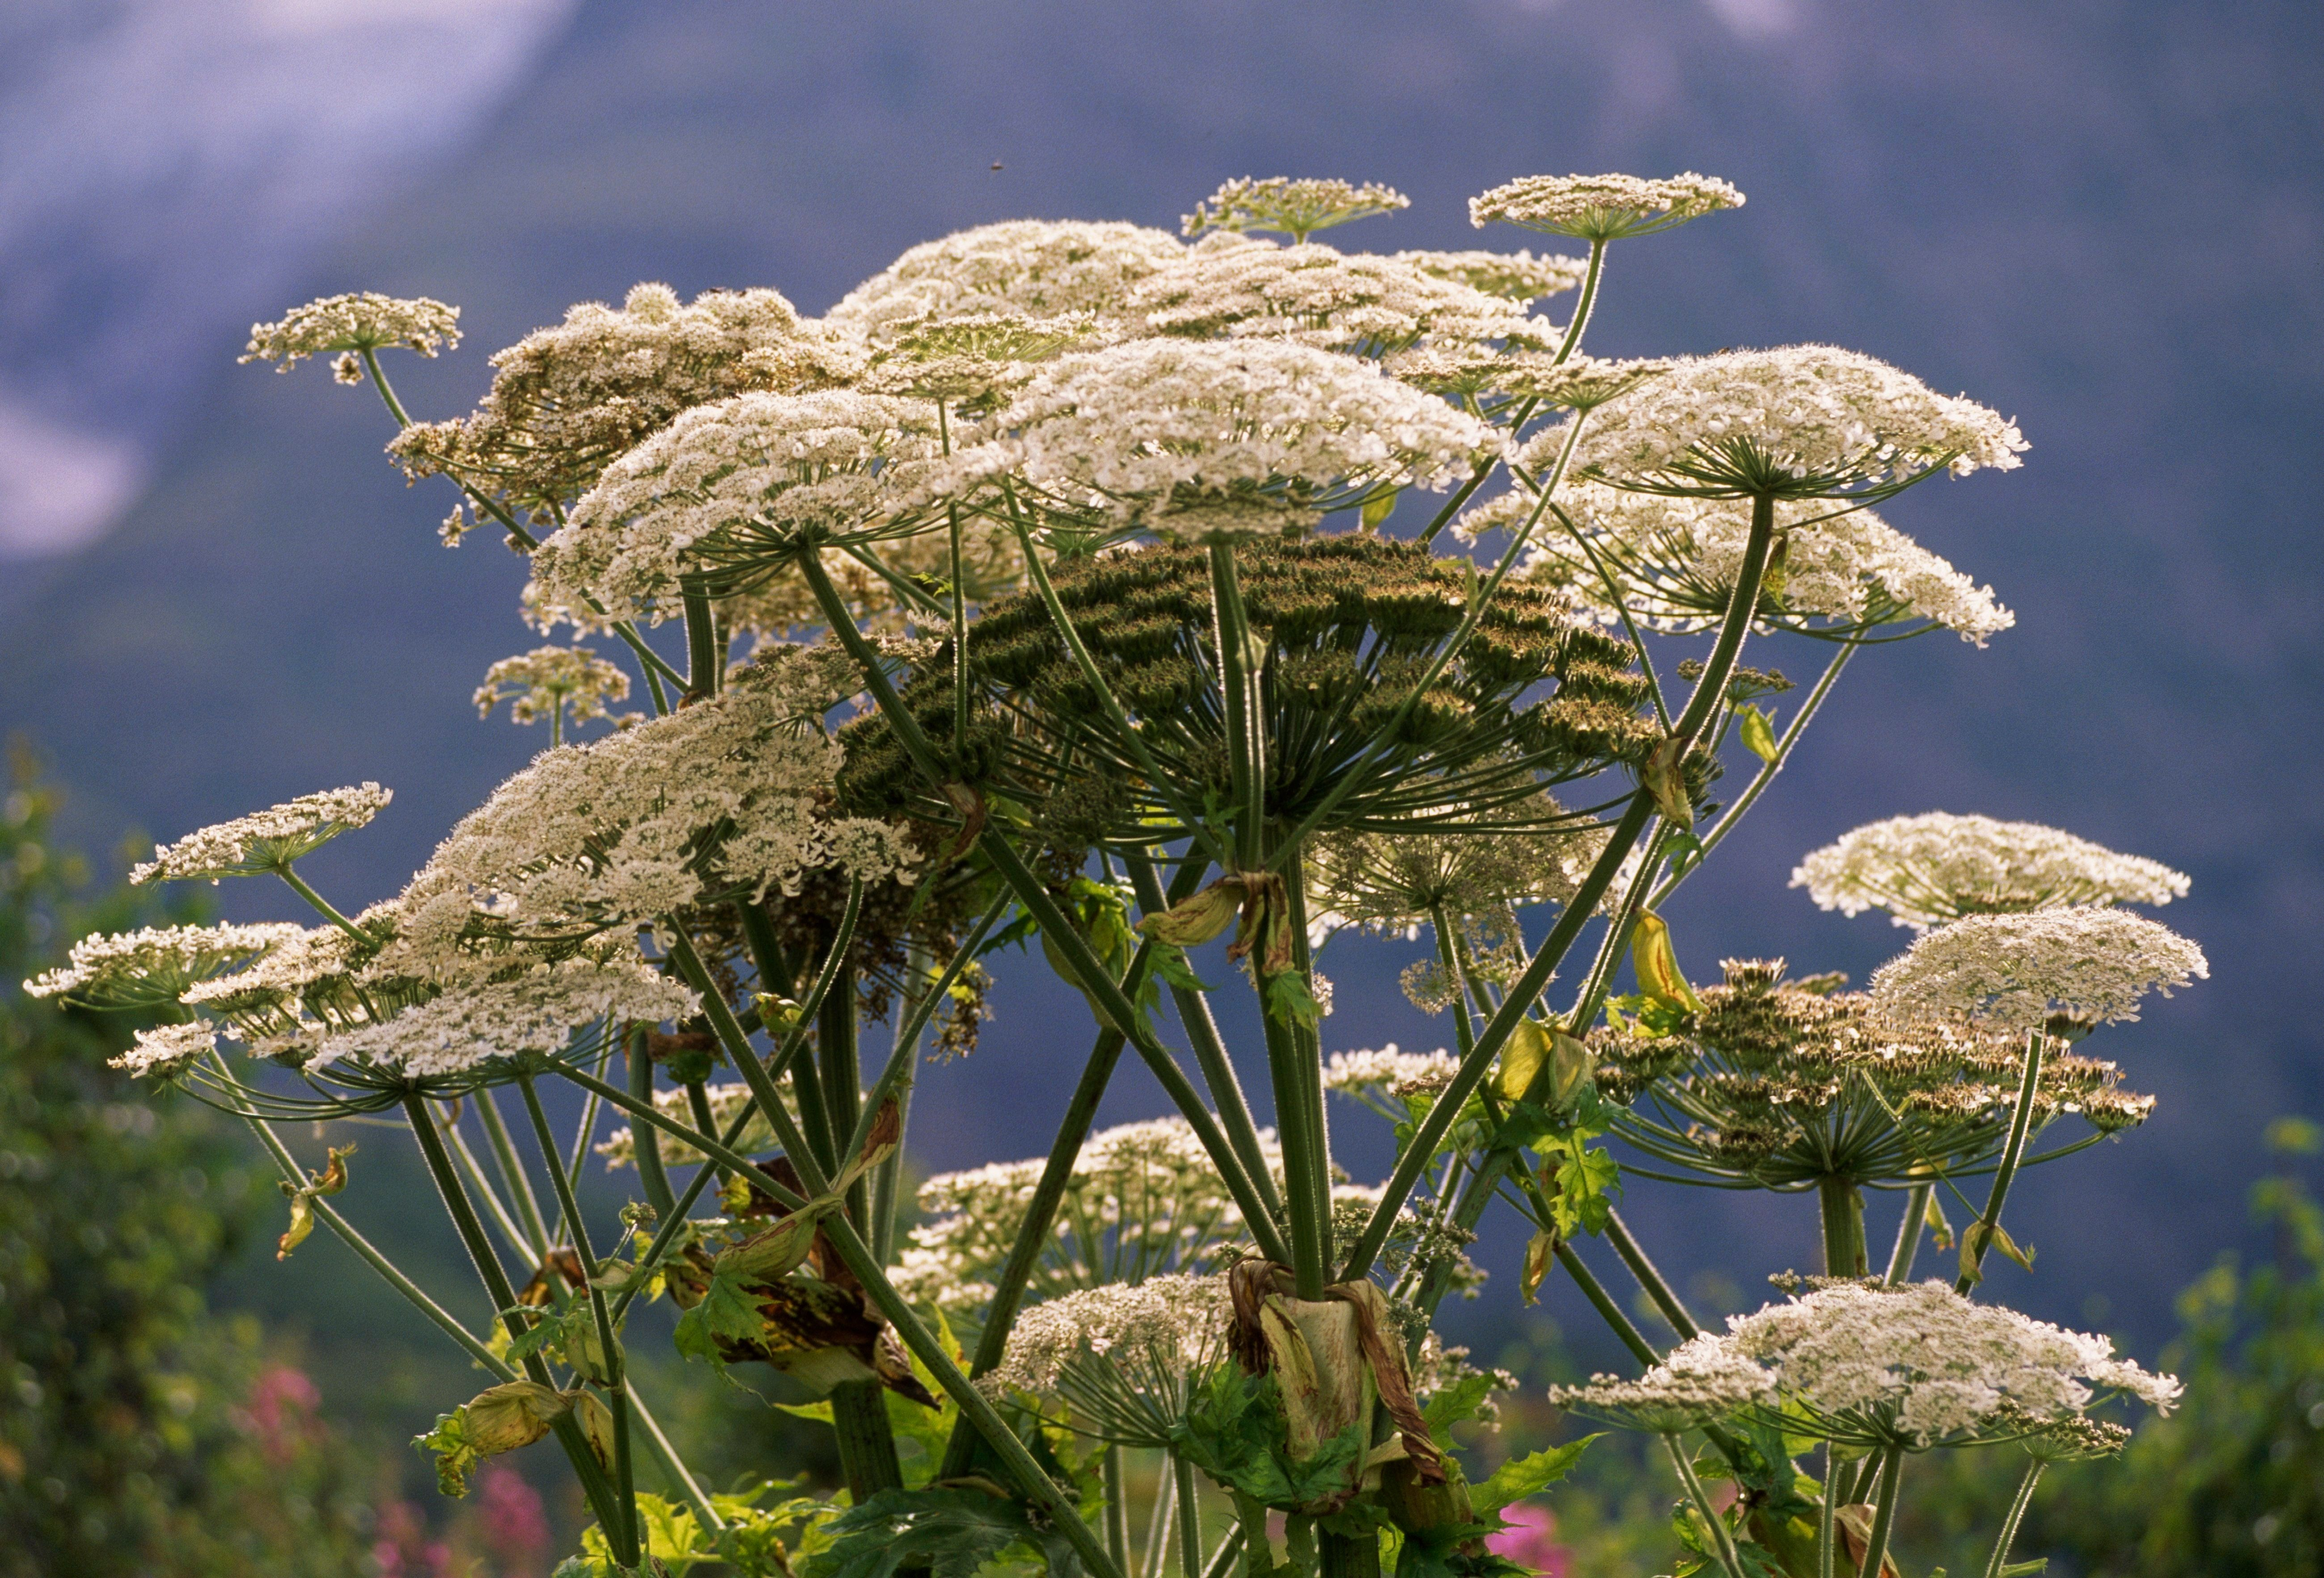 Giant hogweed sends Virginia teen to hospital, burn unit